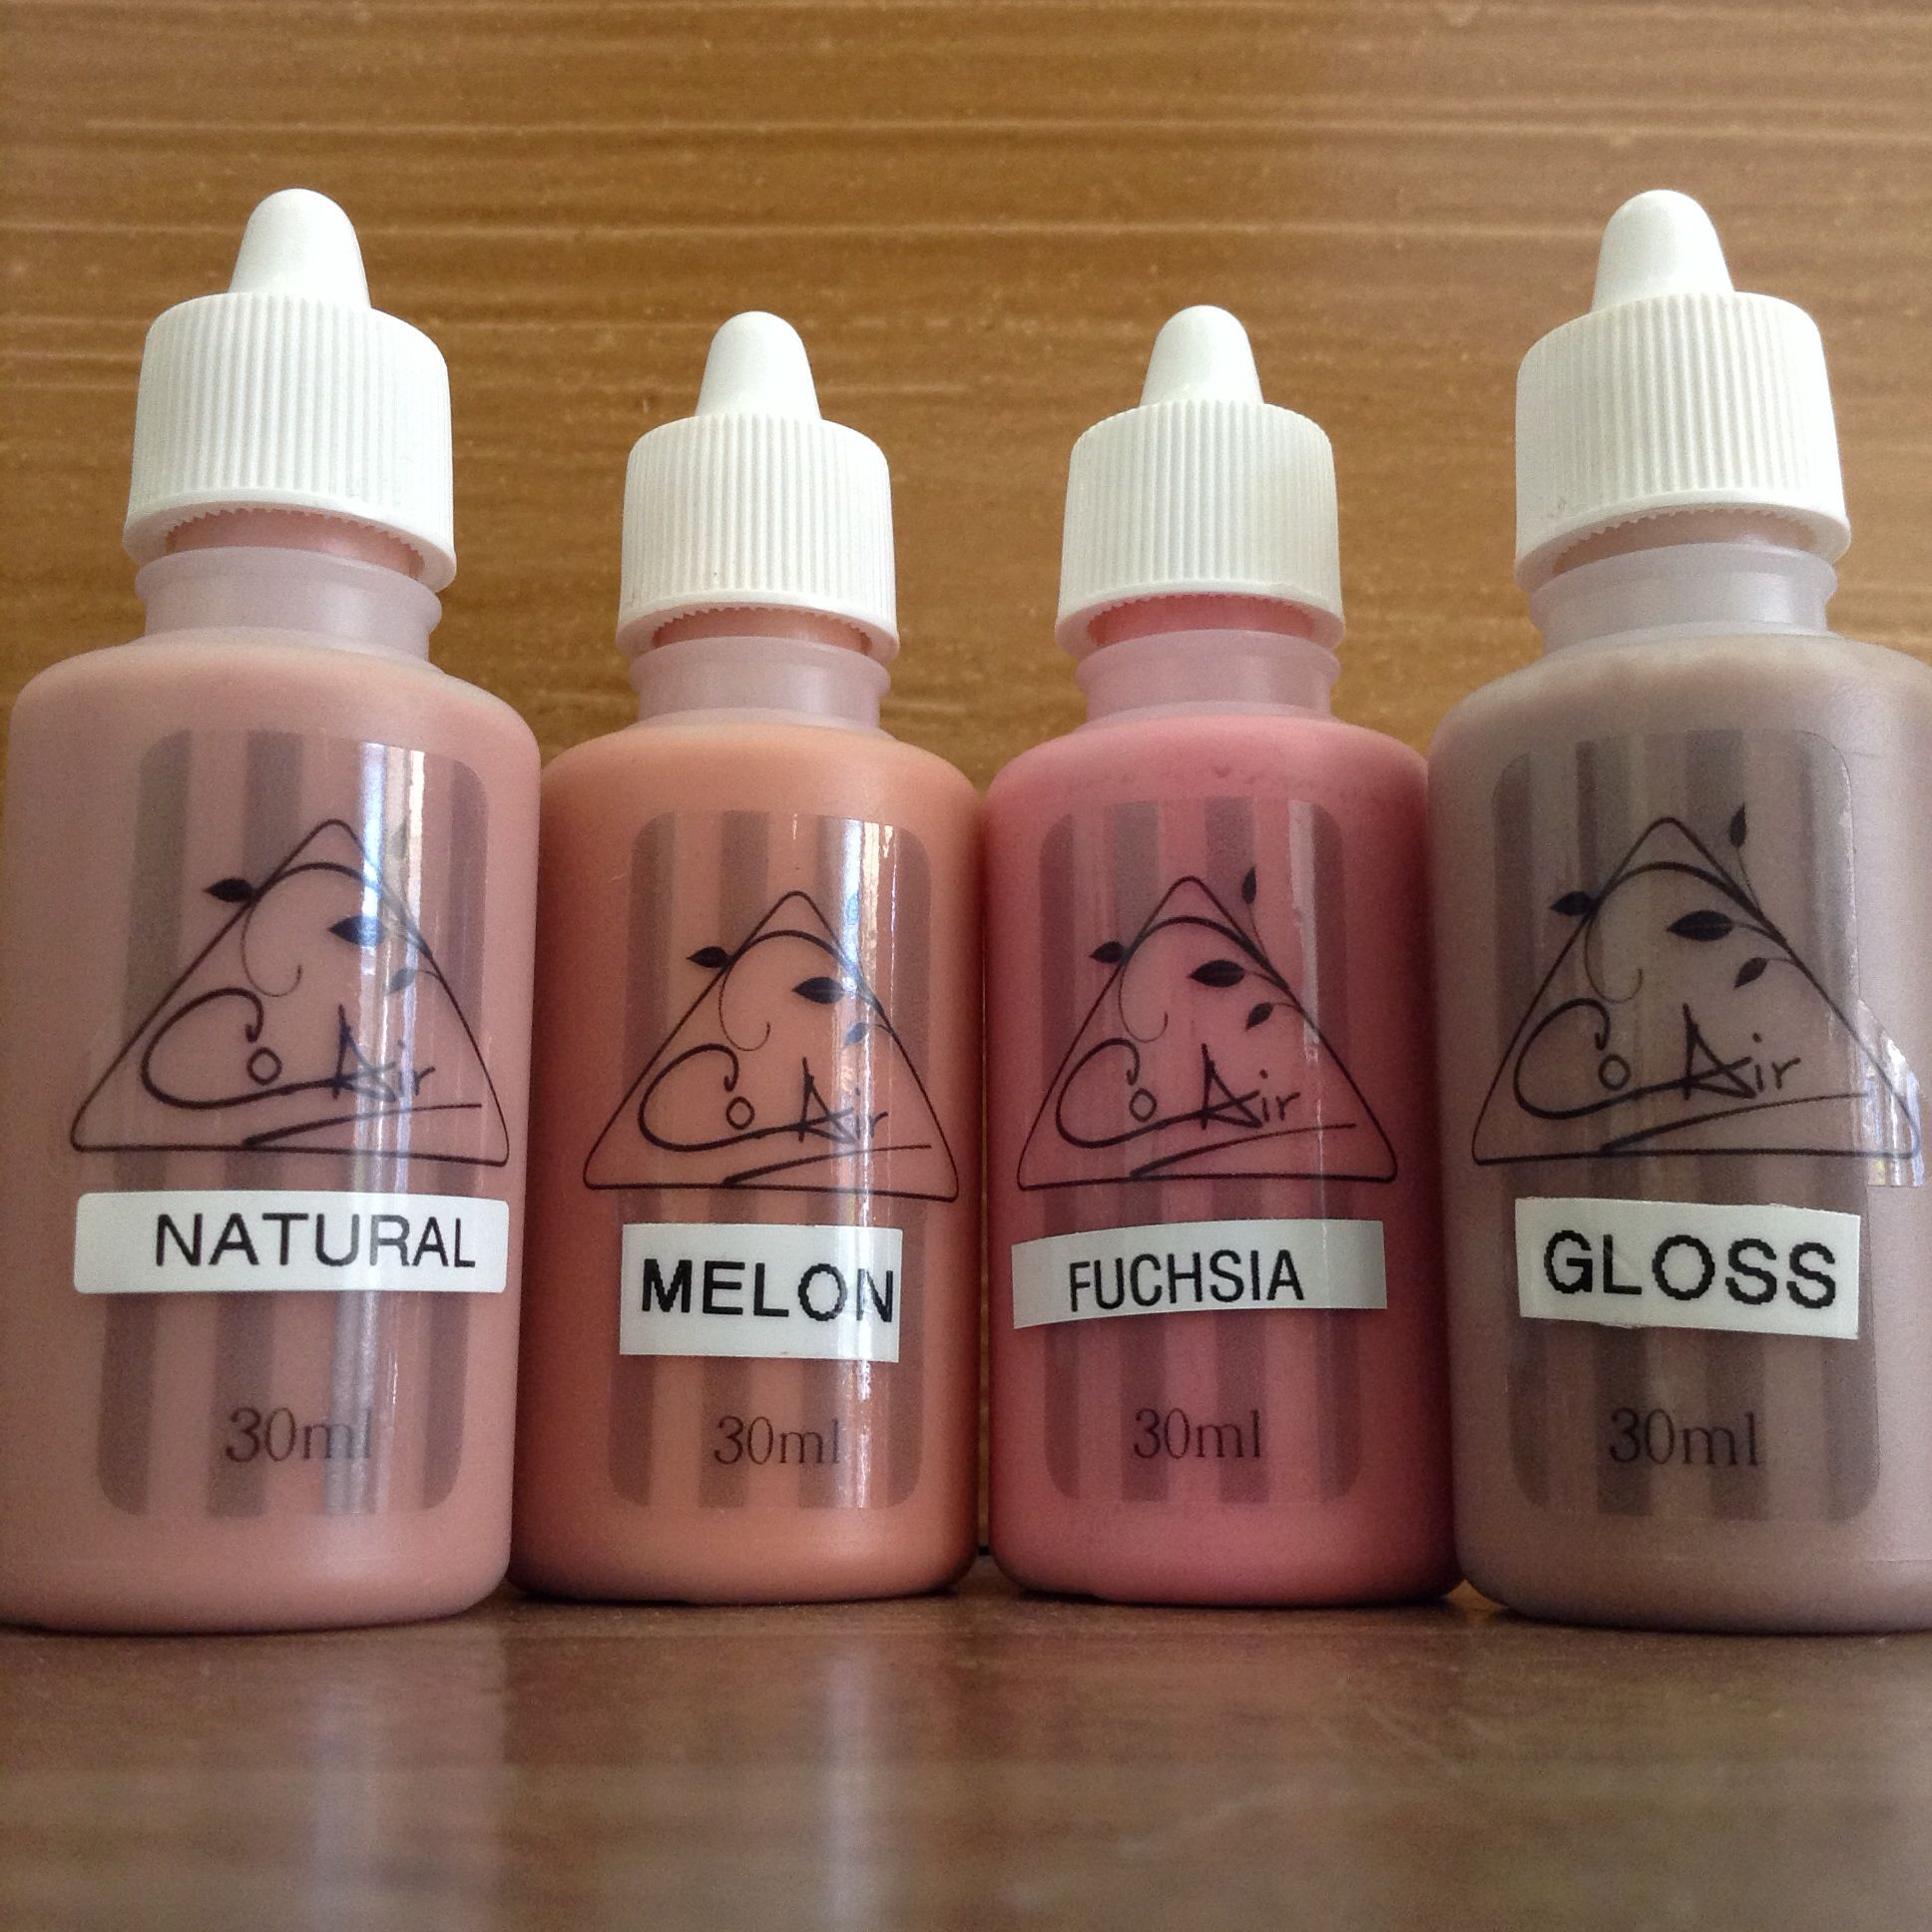 Our new Latonas Co Air blushes! Will be sure to keep your